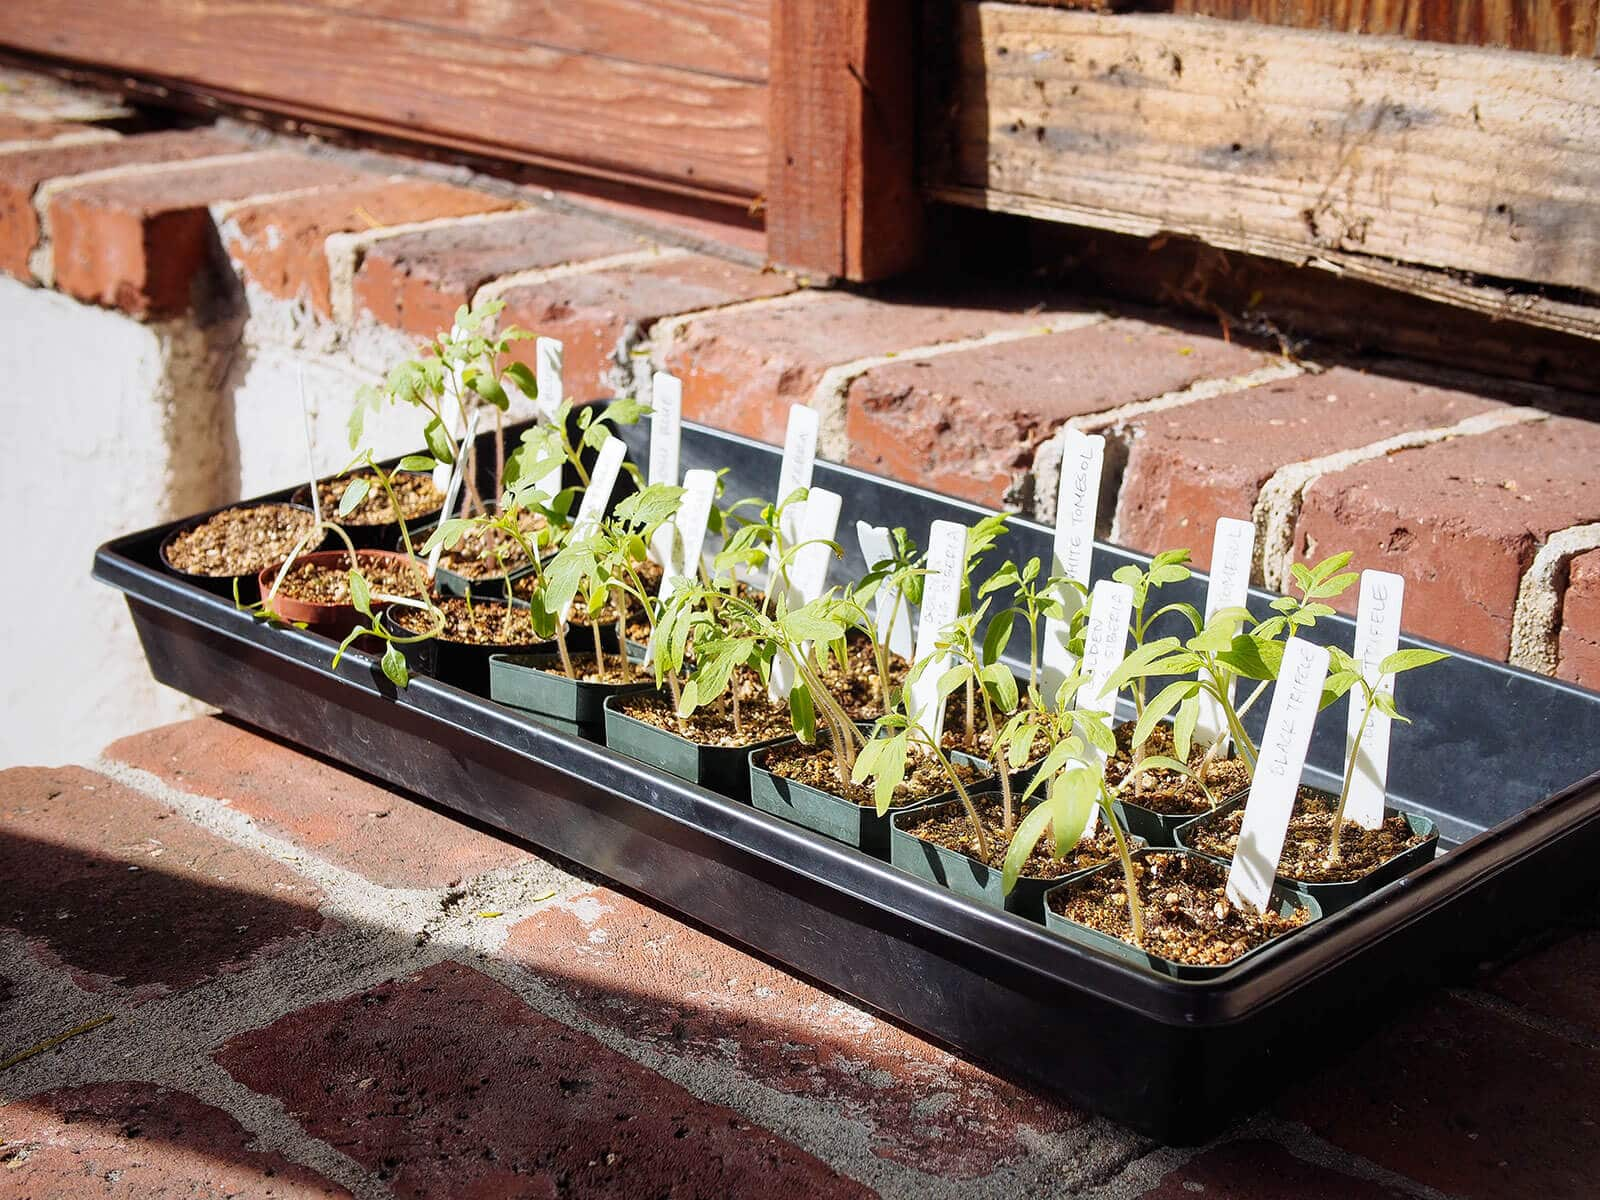 Harden off seedlings by placing them in full sun after a few days